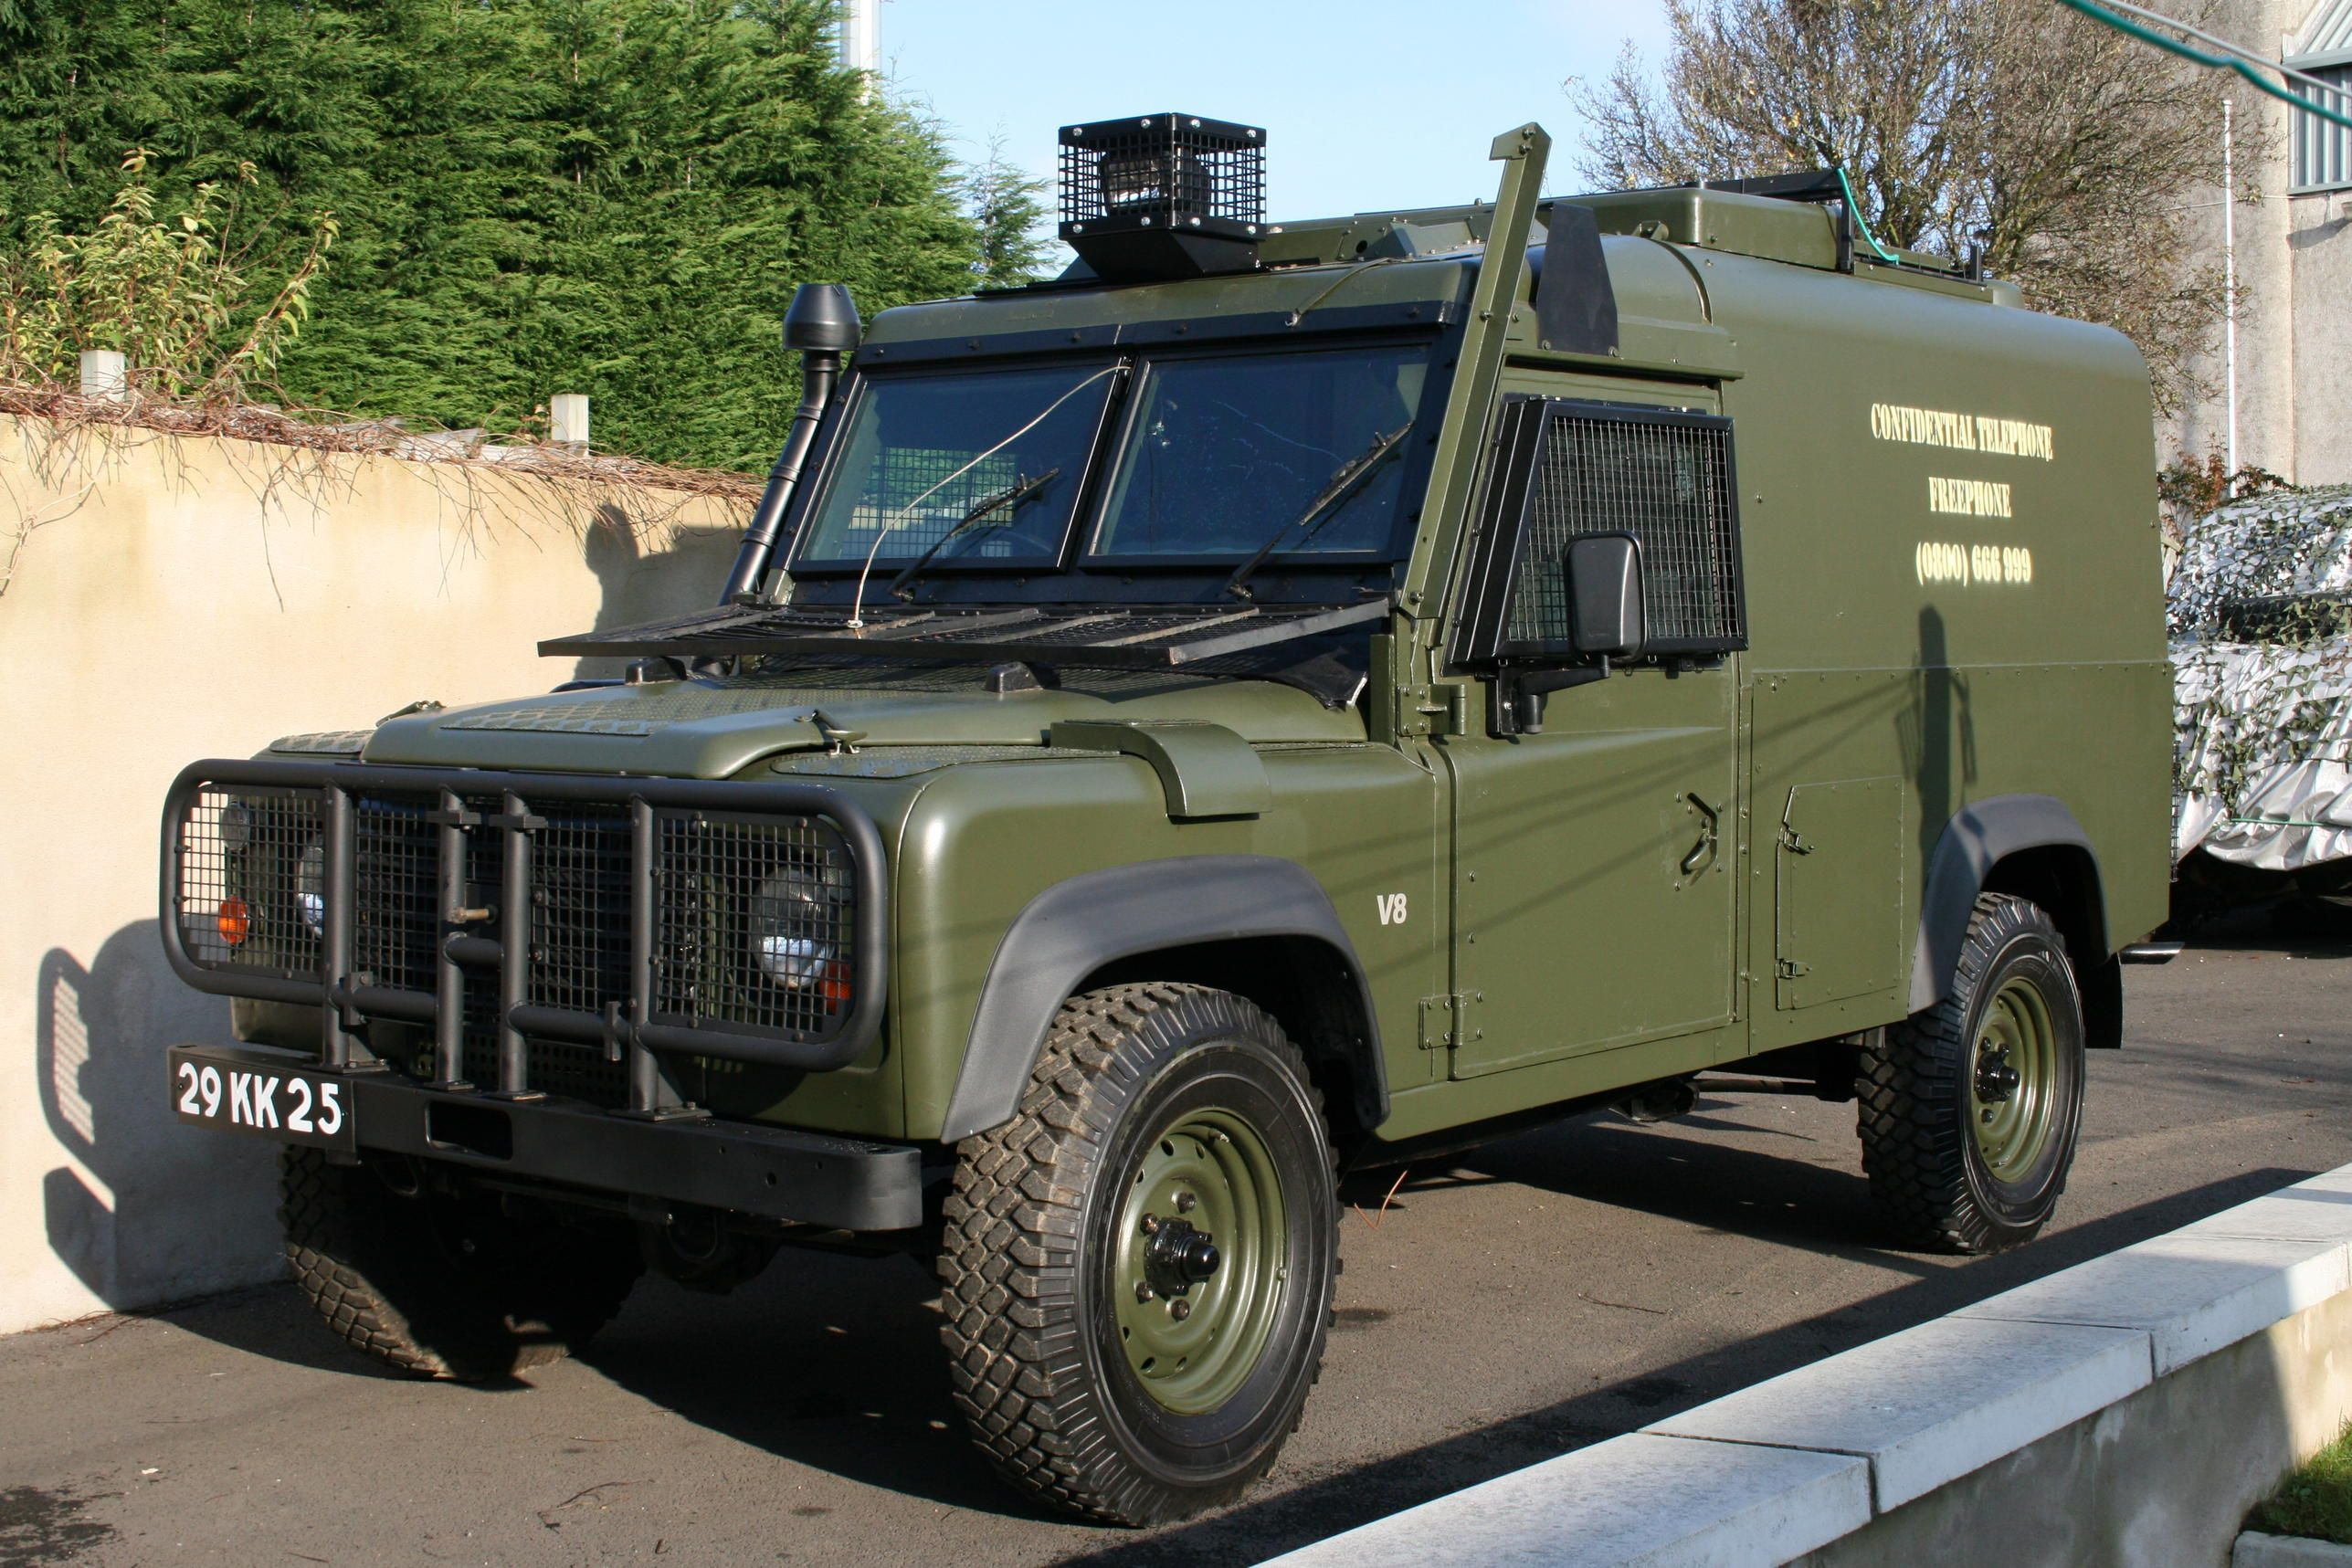 Pin on Land Rover MILITARY